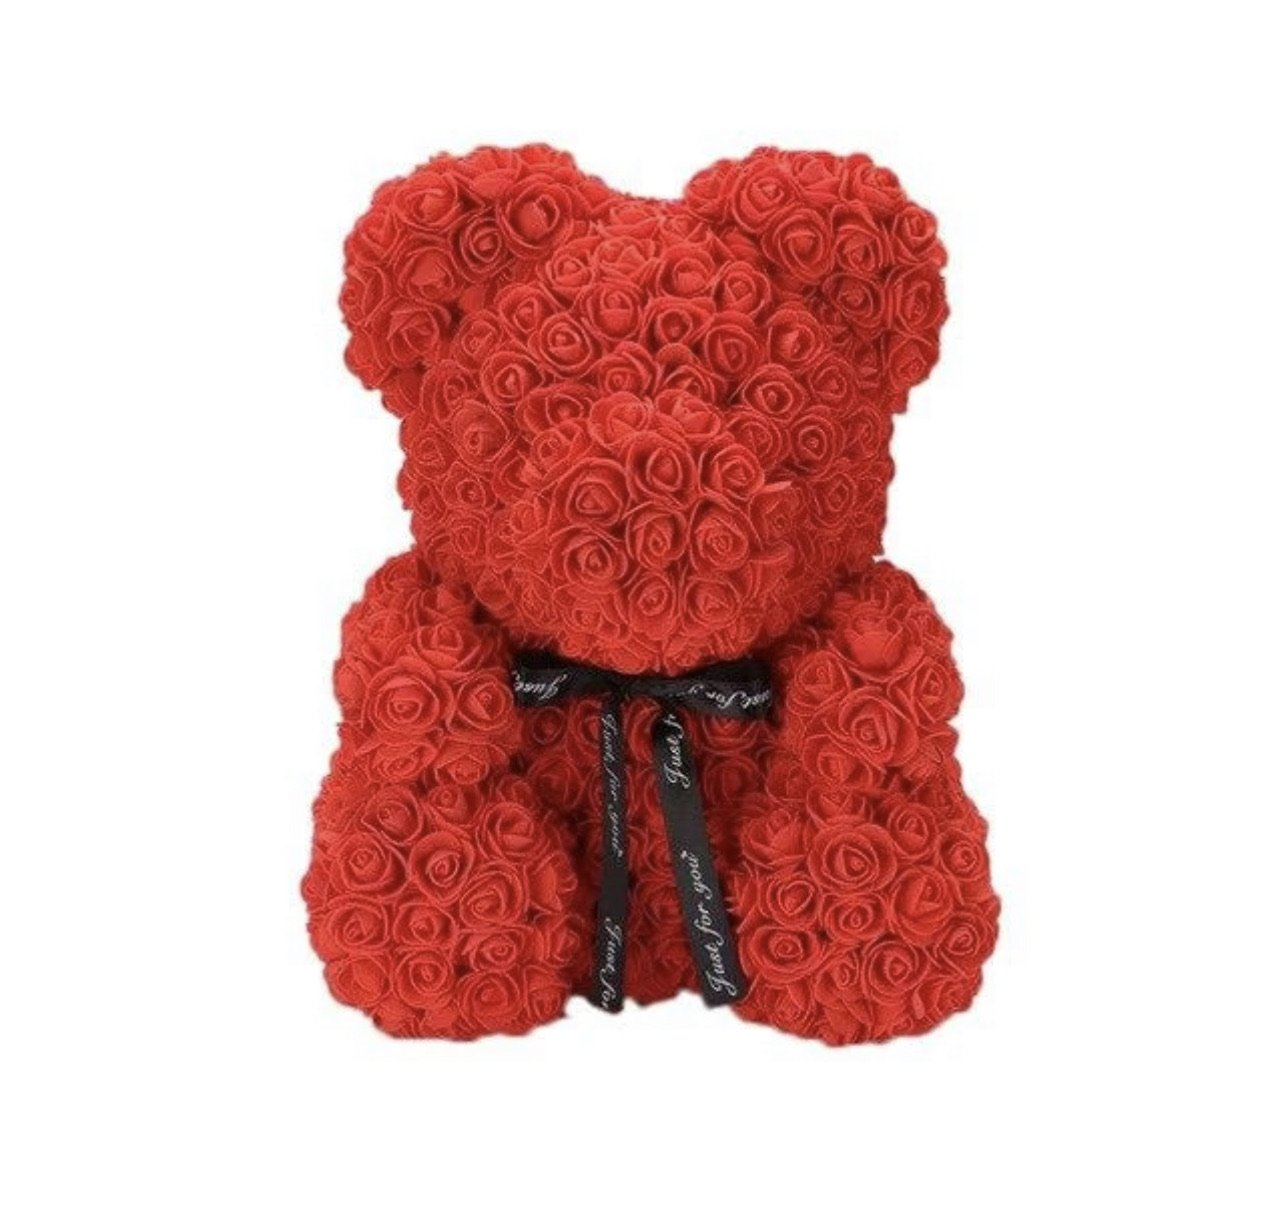 Lge  Rose Teddy Bear